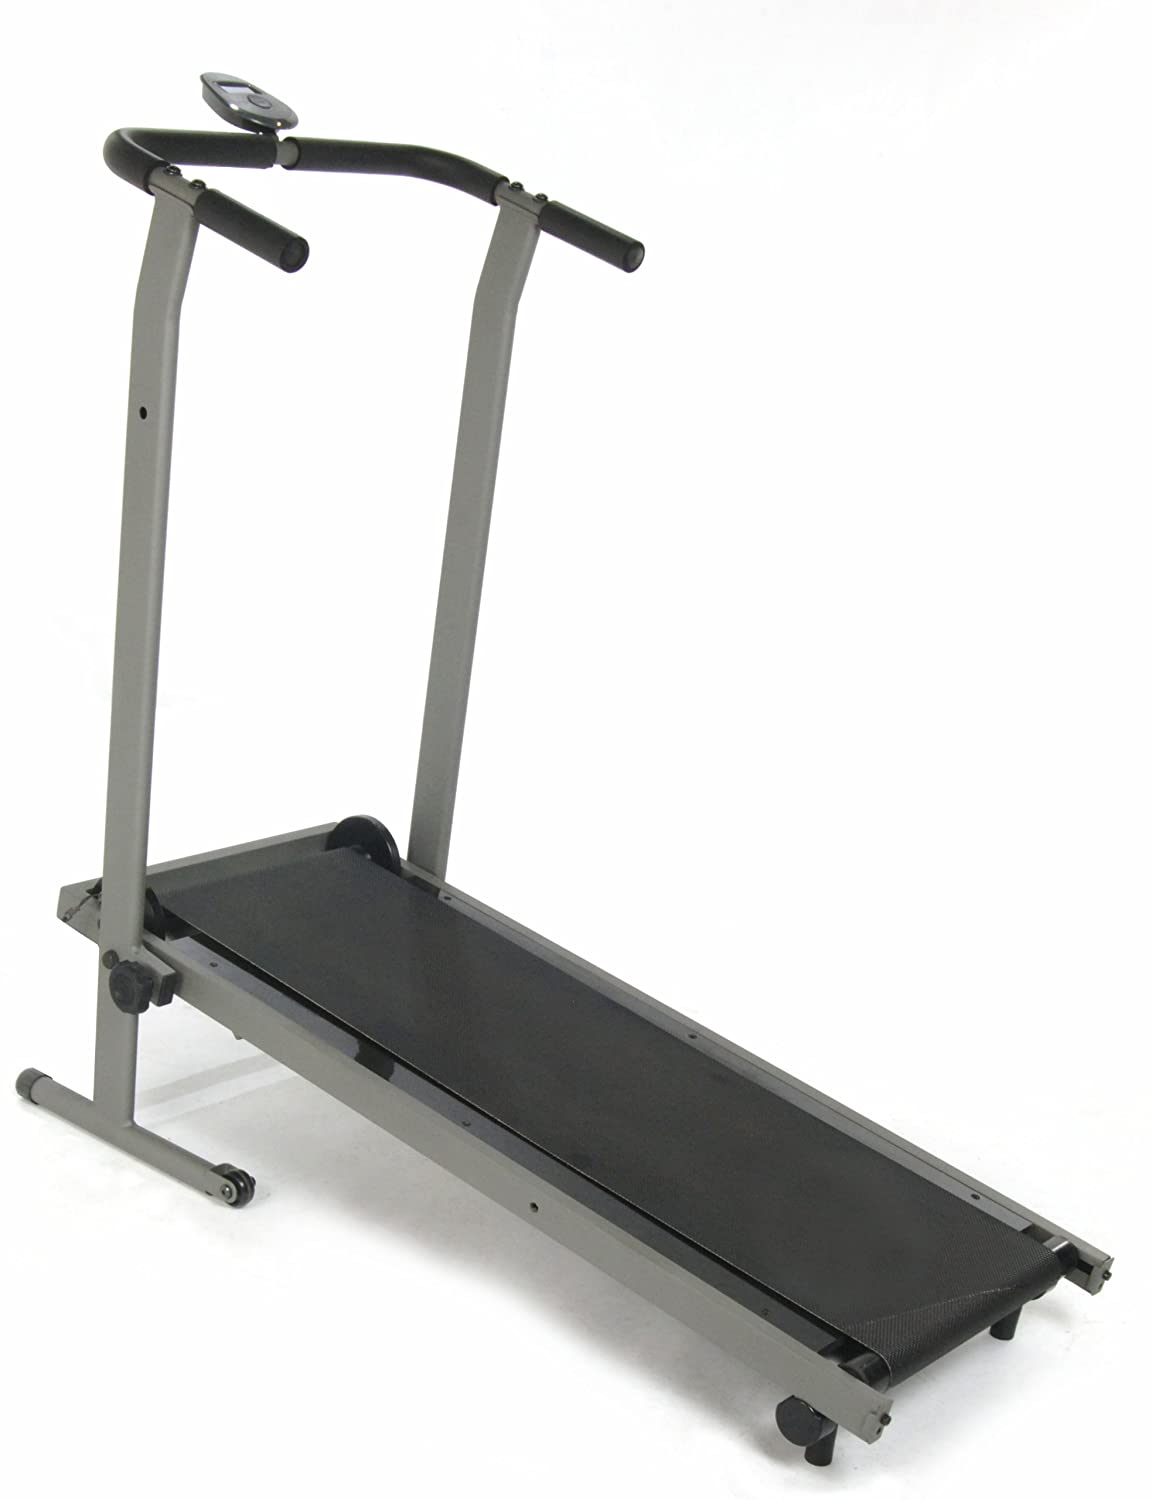 Treadmills: buy treadmills online upto 70%off select models.